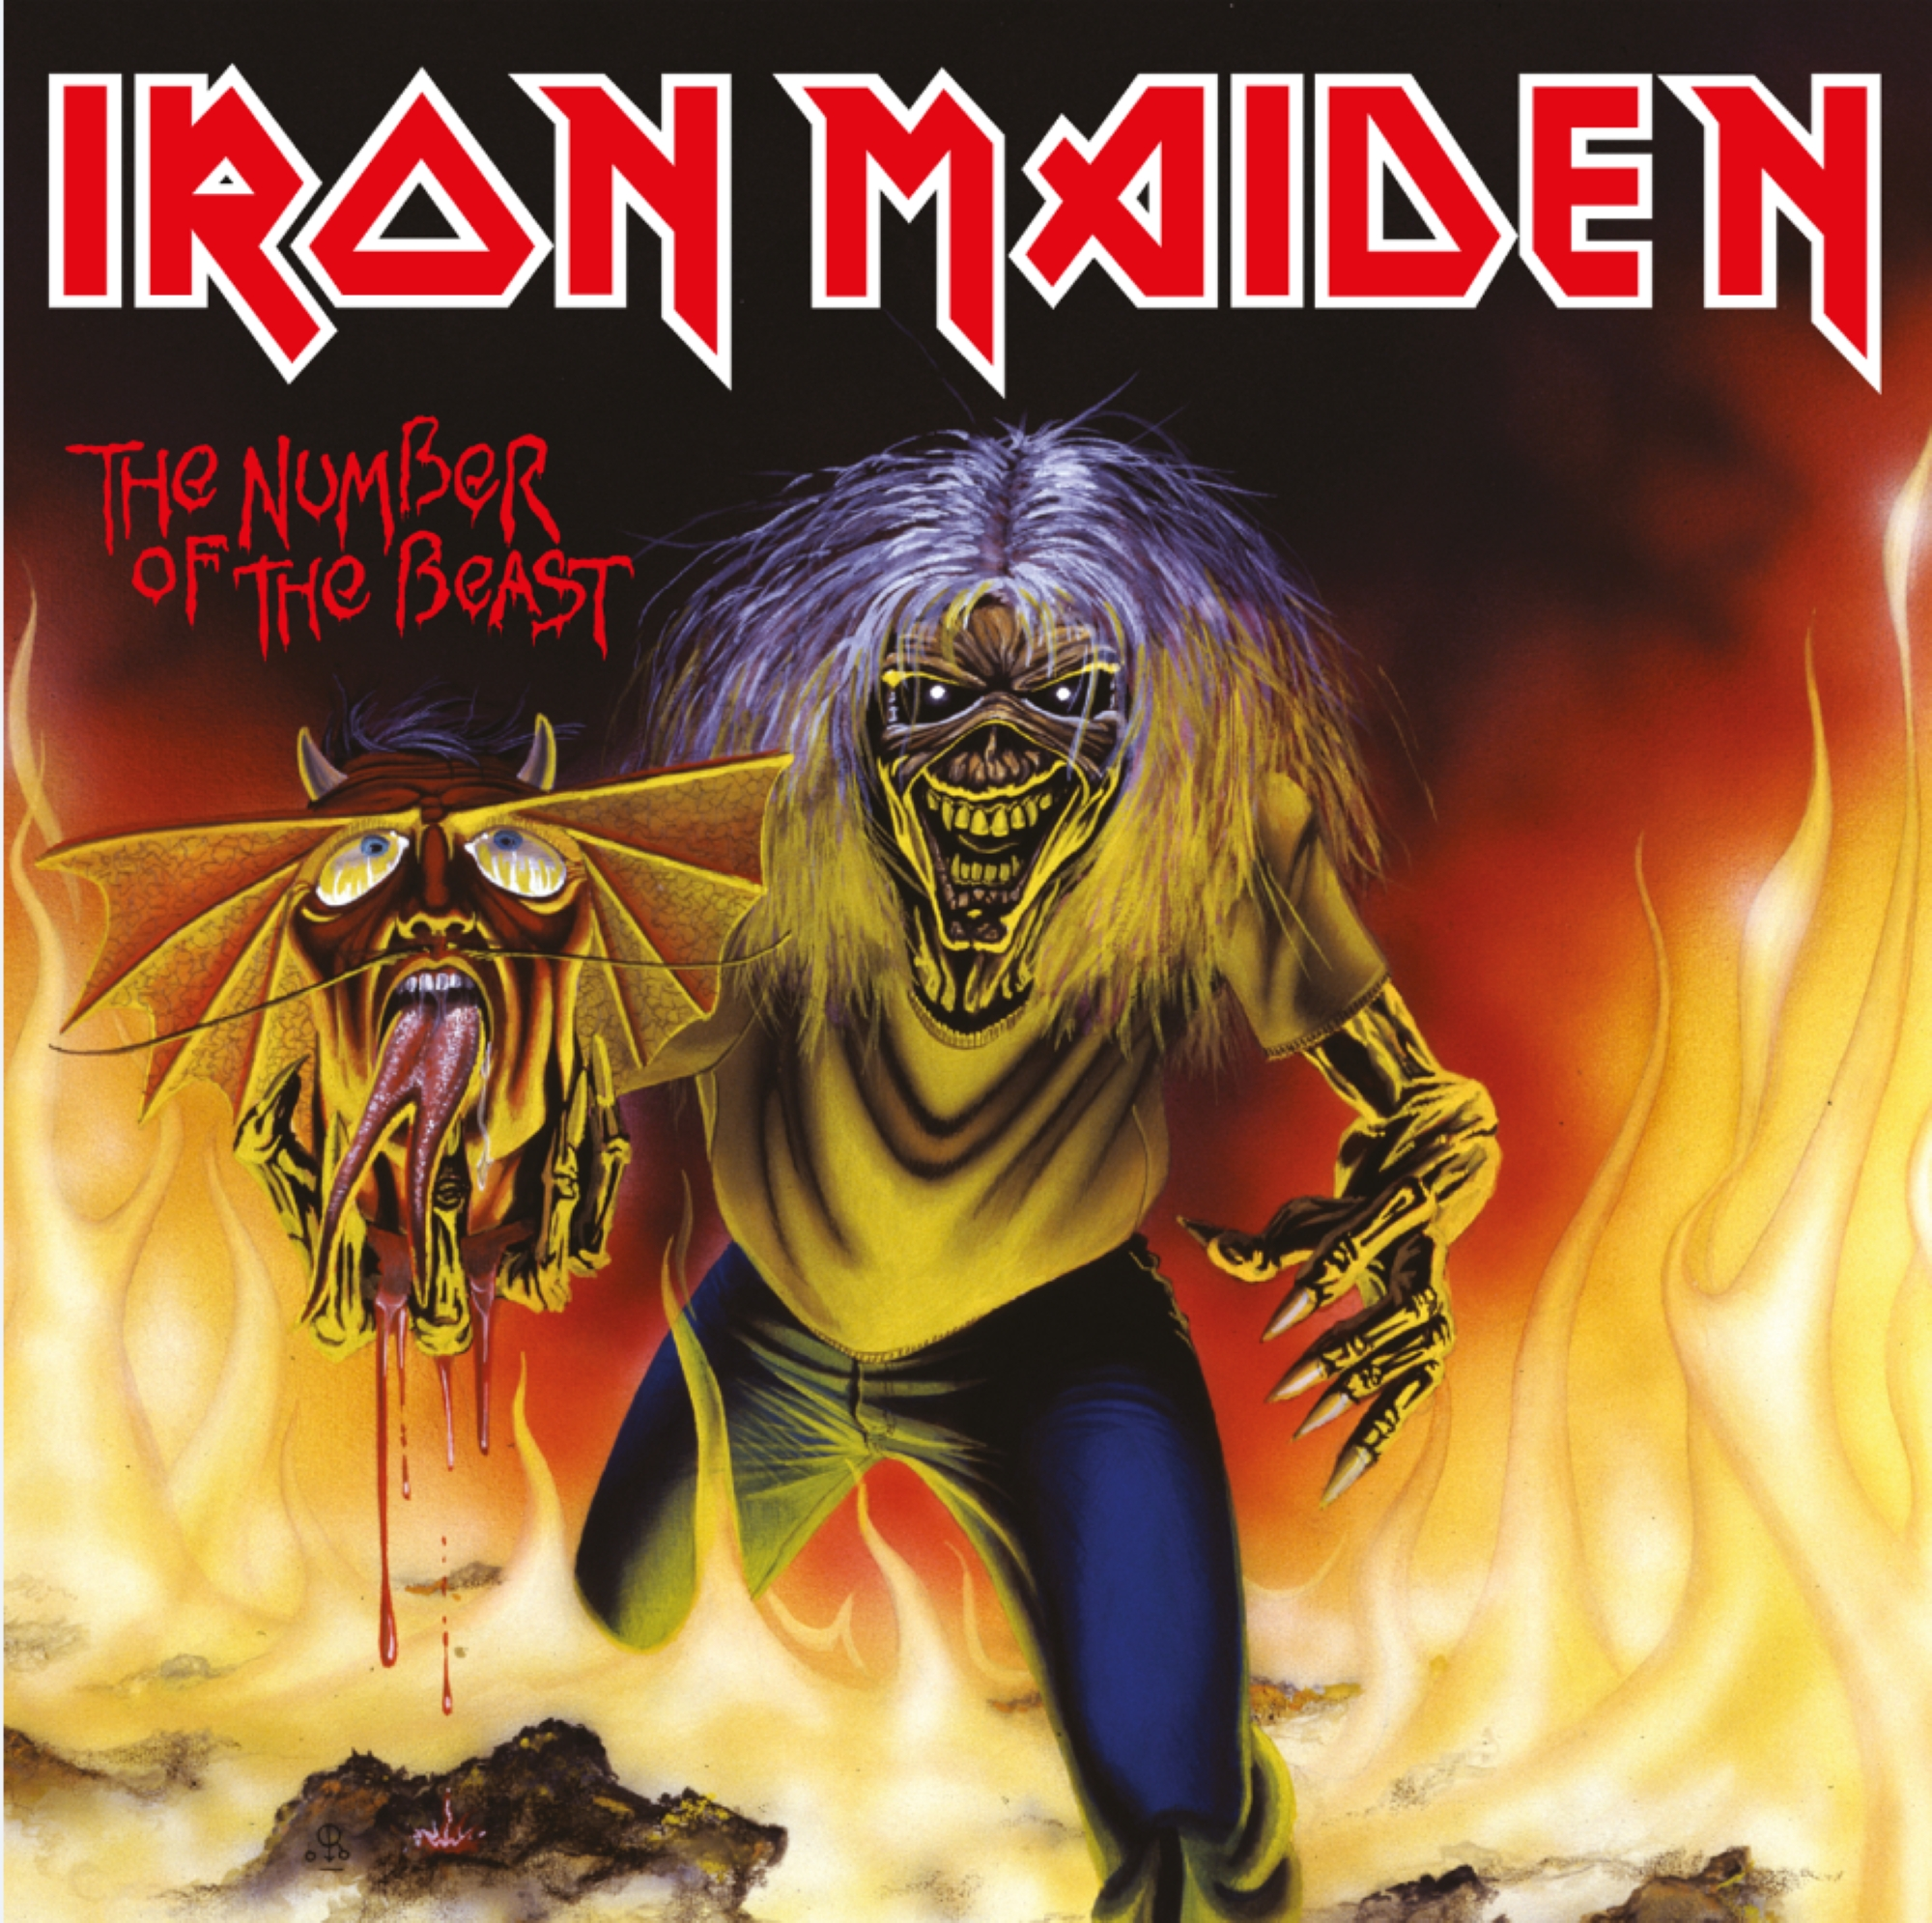 Iron Maiden - The Number Of The Beast (7 Single) - Relacs.dk